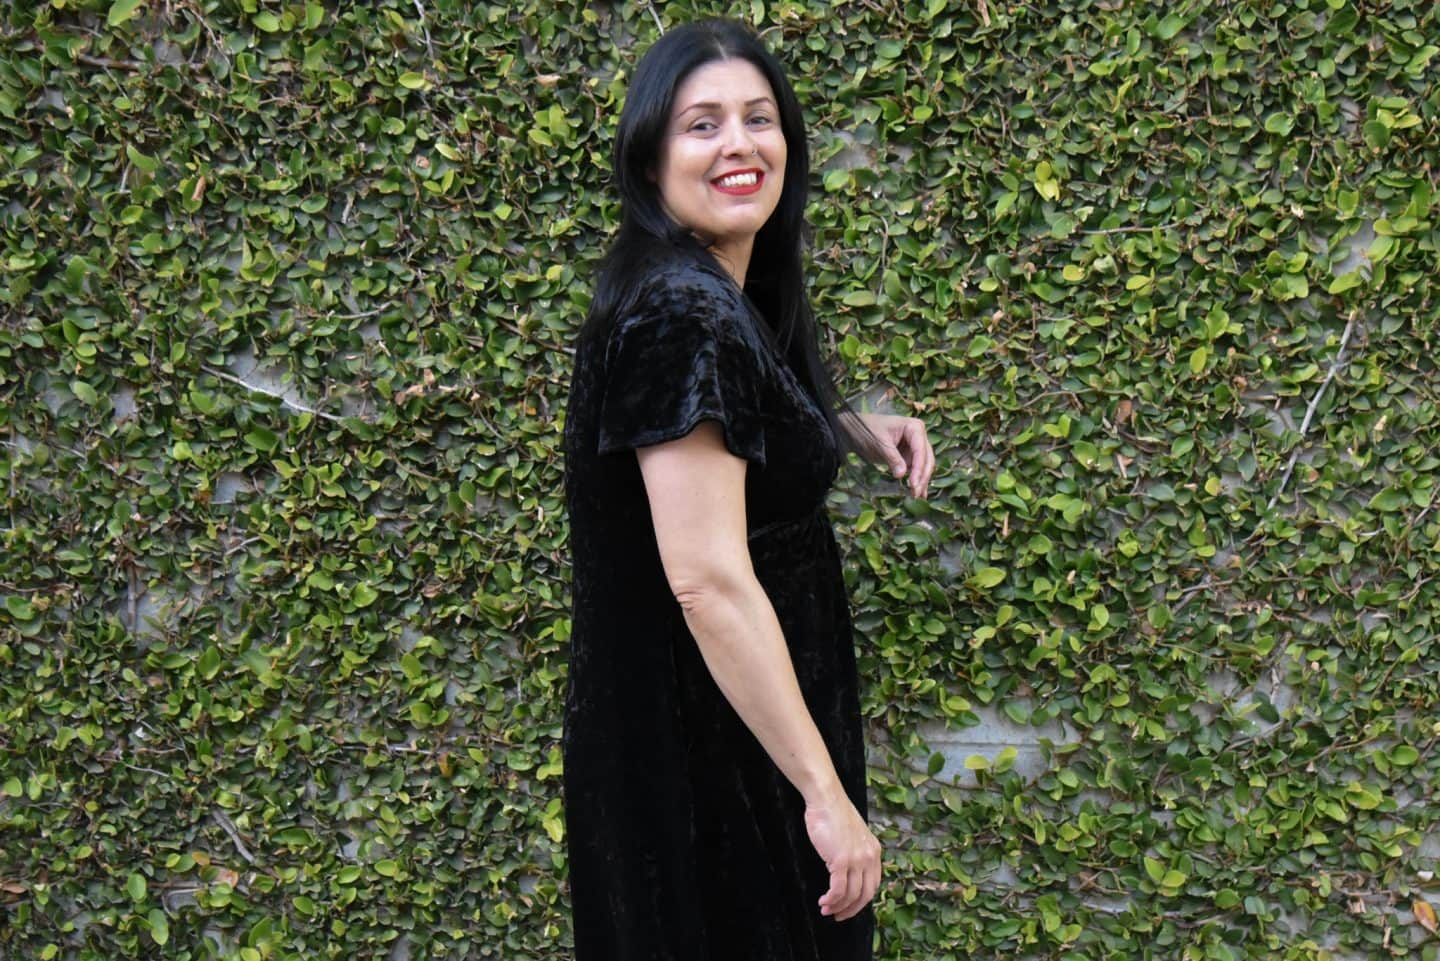 Image of a woman wearing a black velvet dress with fluttery sleeves smiling at the camera in front of a wall covered in vine.